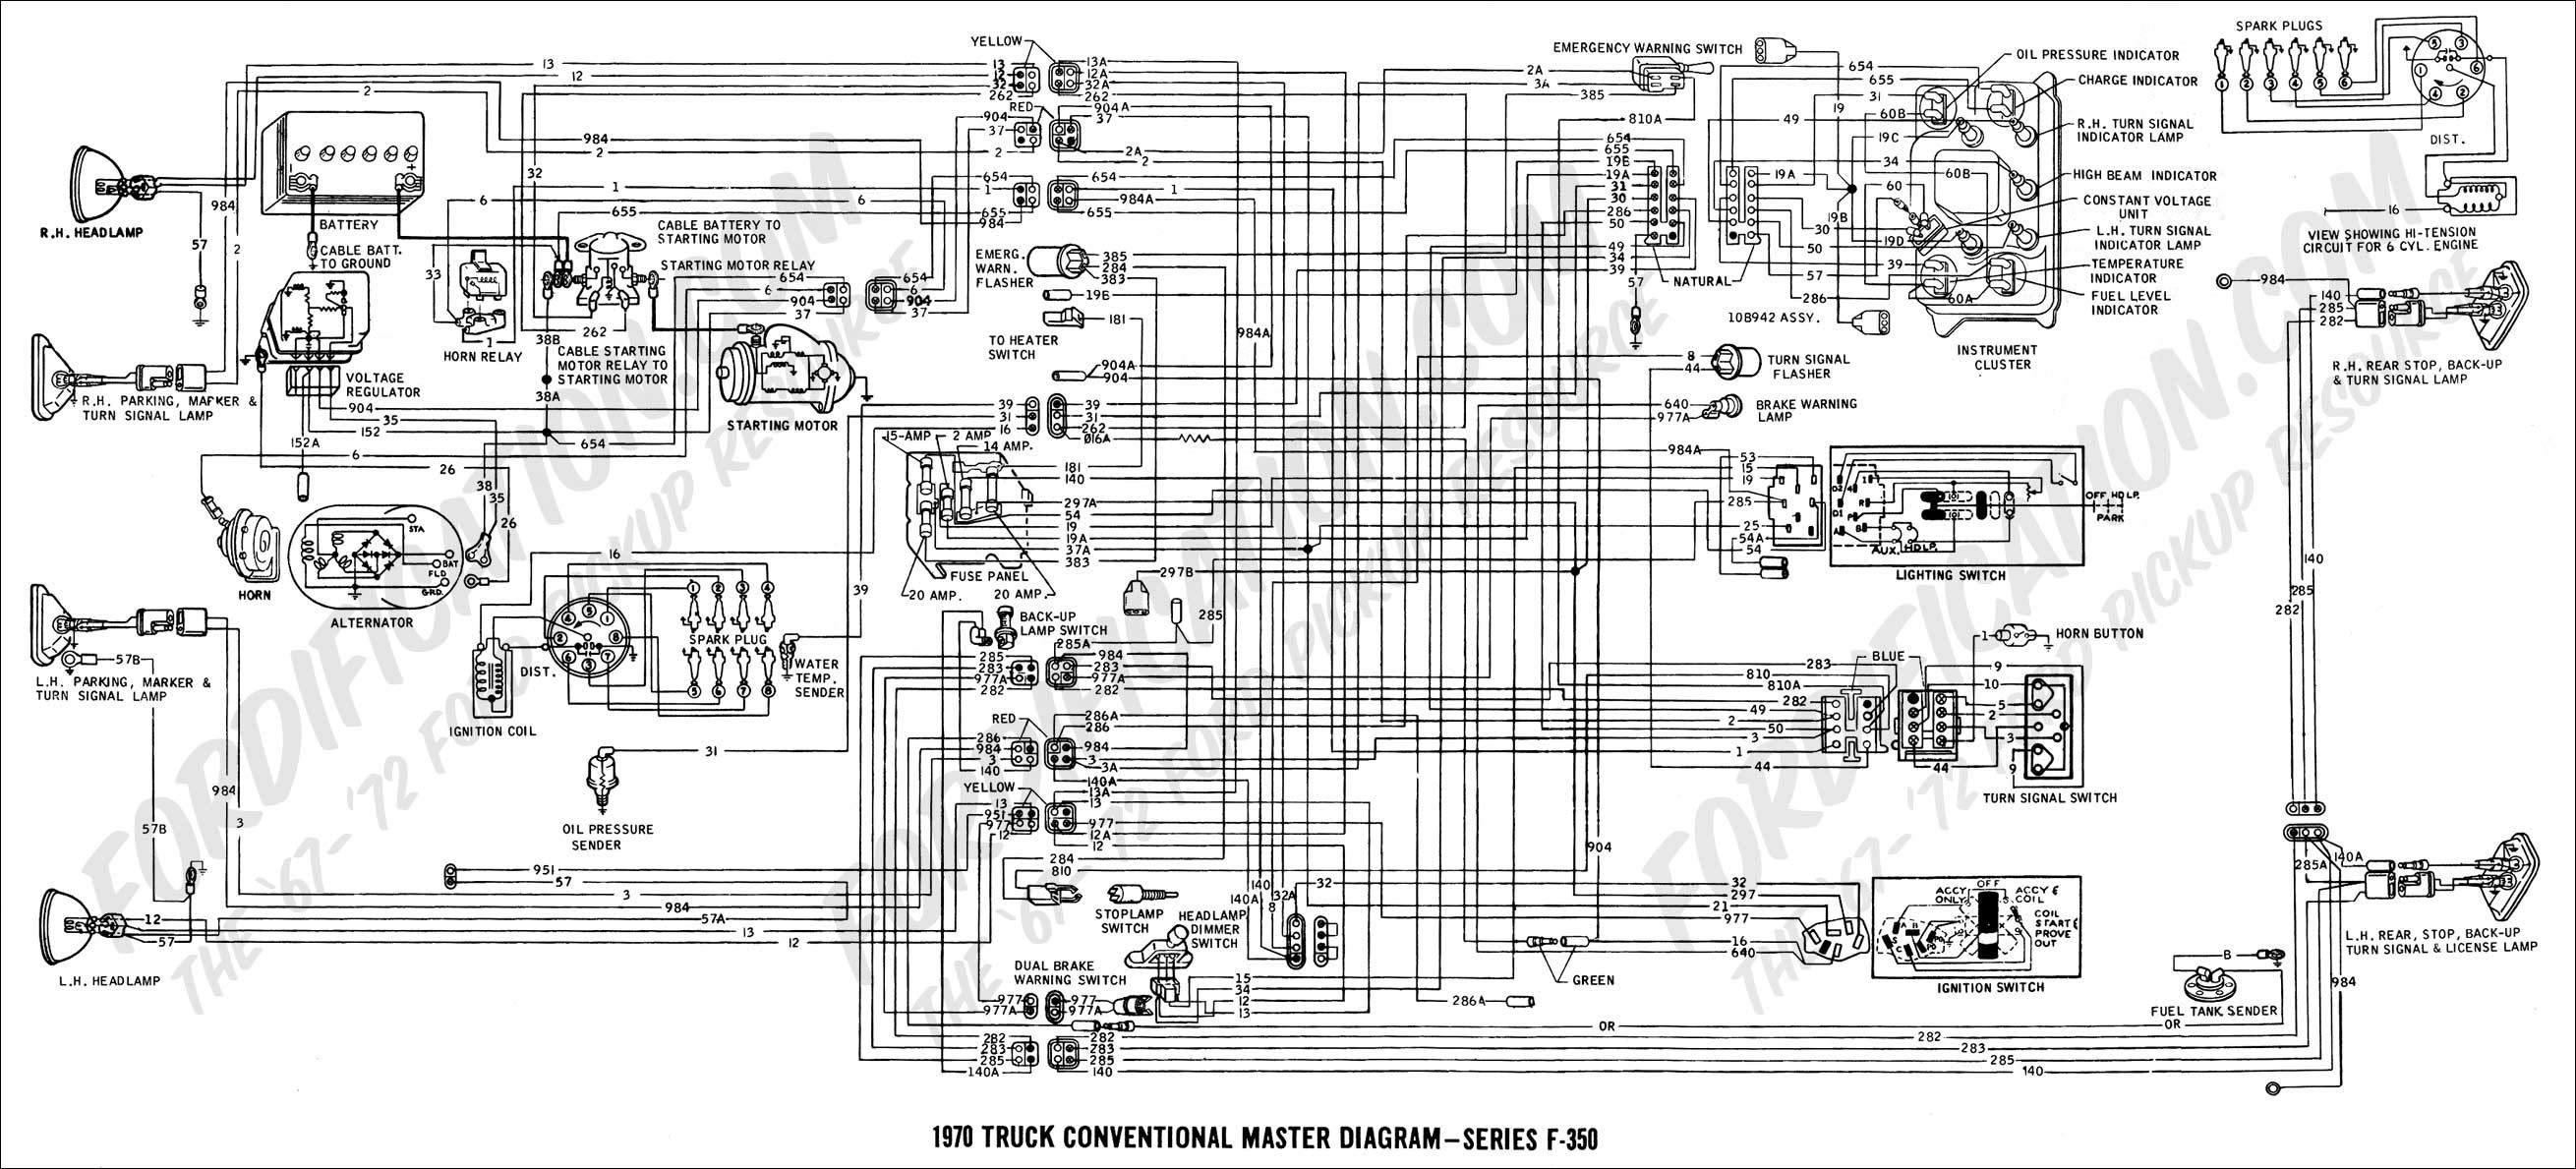 2000 ford F250 Rear Tail Light Wiring 2001 ford F350 Wiring Diagram Wiring Diagram Schematic Of 2000 ford F250 Rear Tail Light Wiring